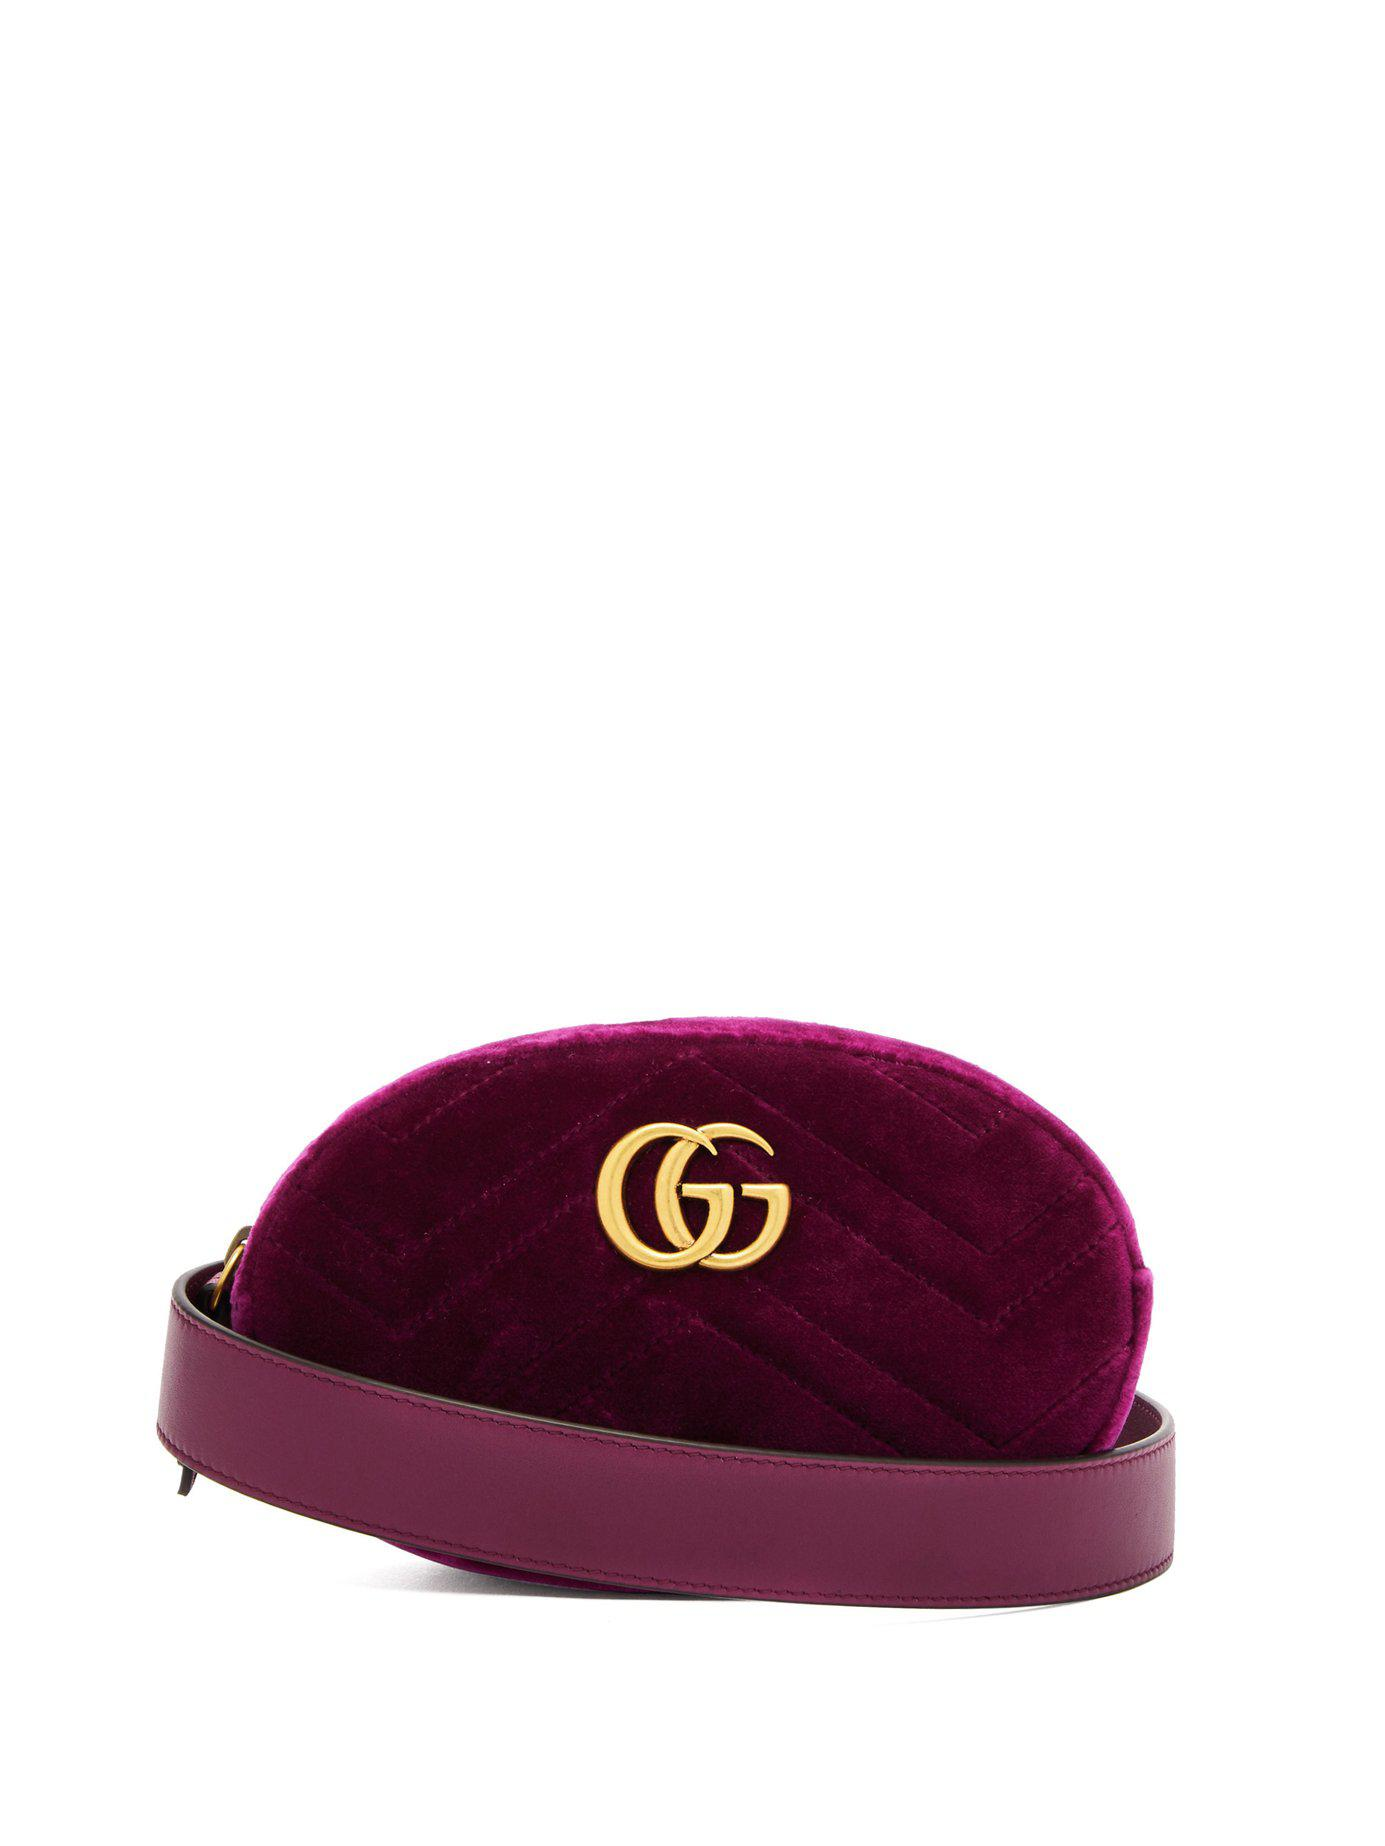 Lyst - Gucci Gg Marmont Velvet Belt Bag in Purple 848cb4a9b6c